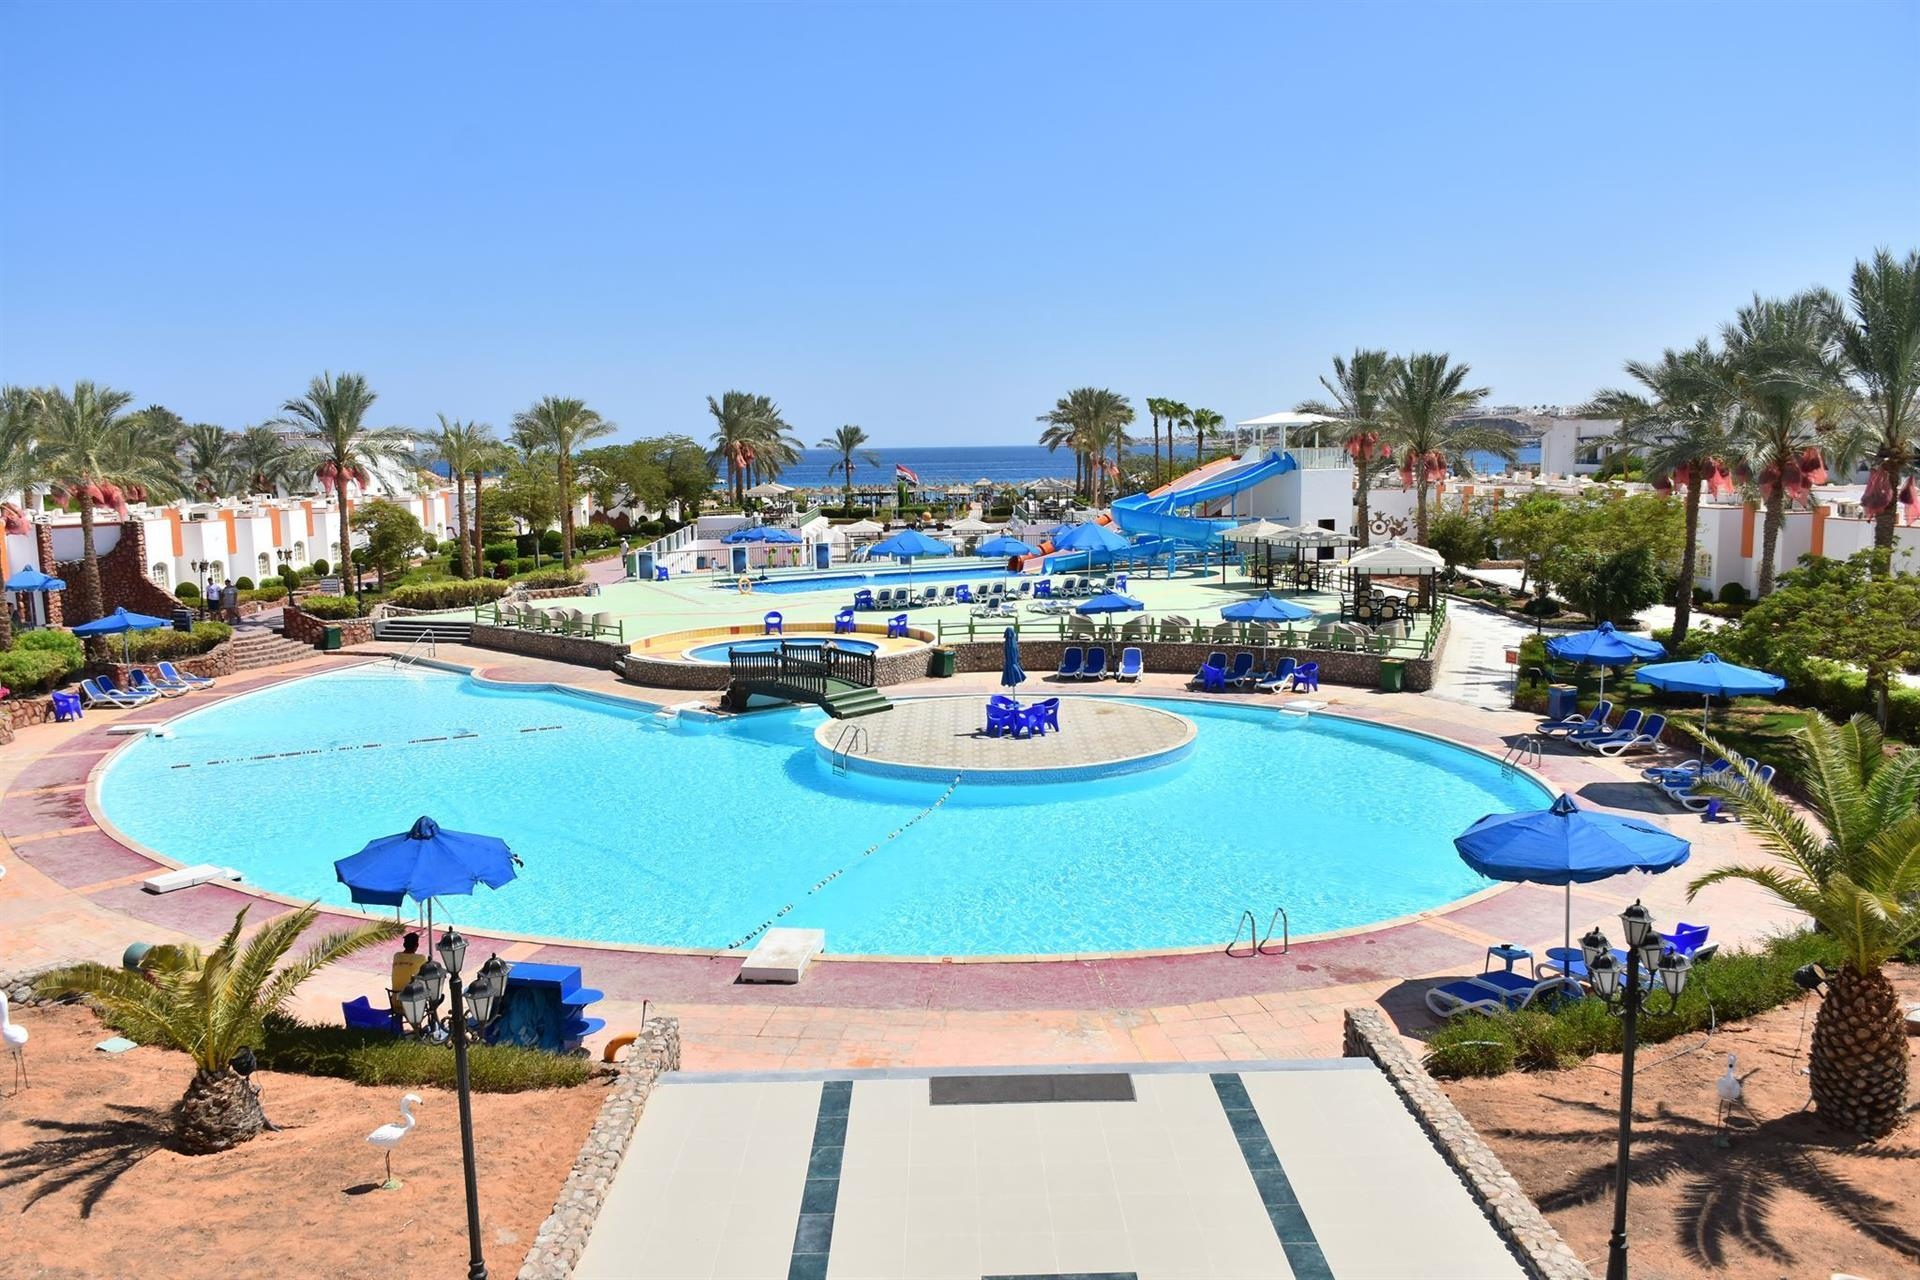 GAFY RESORT SHARM EL SHEIKH 4 ****+